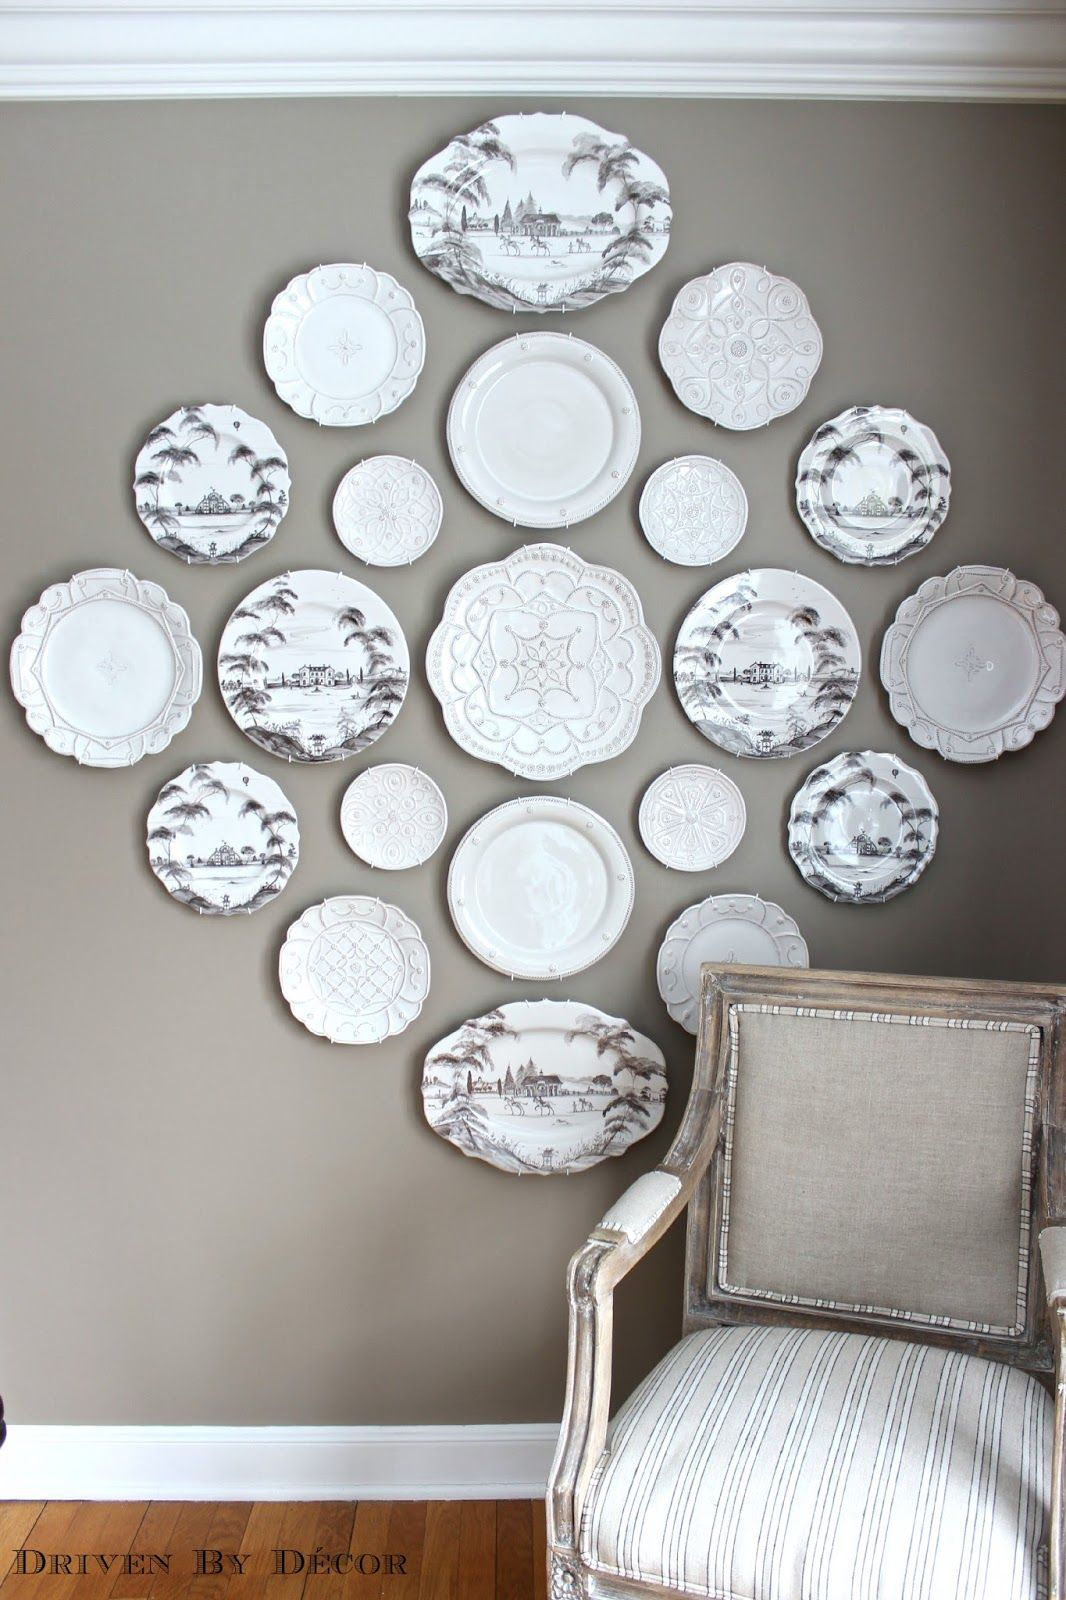 The Easy How To For Hanging Plates On Wall Dining Room